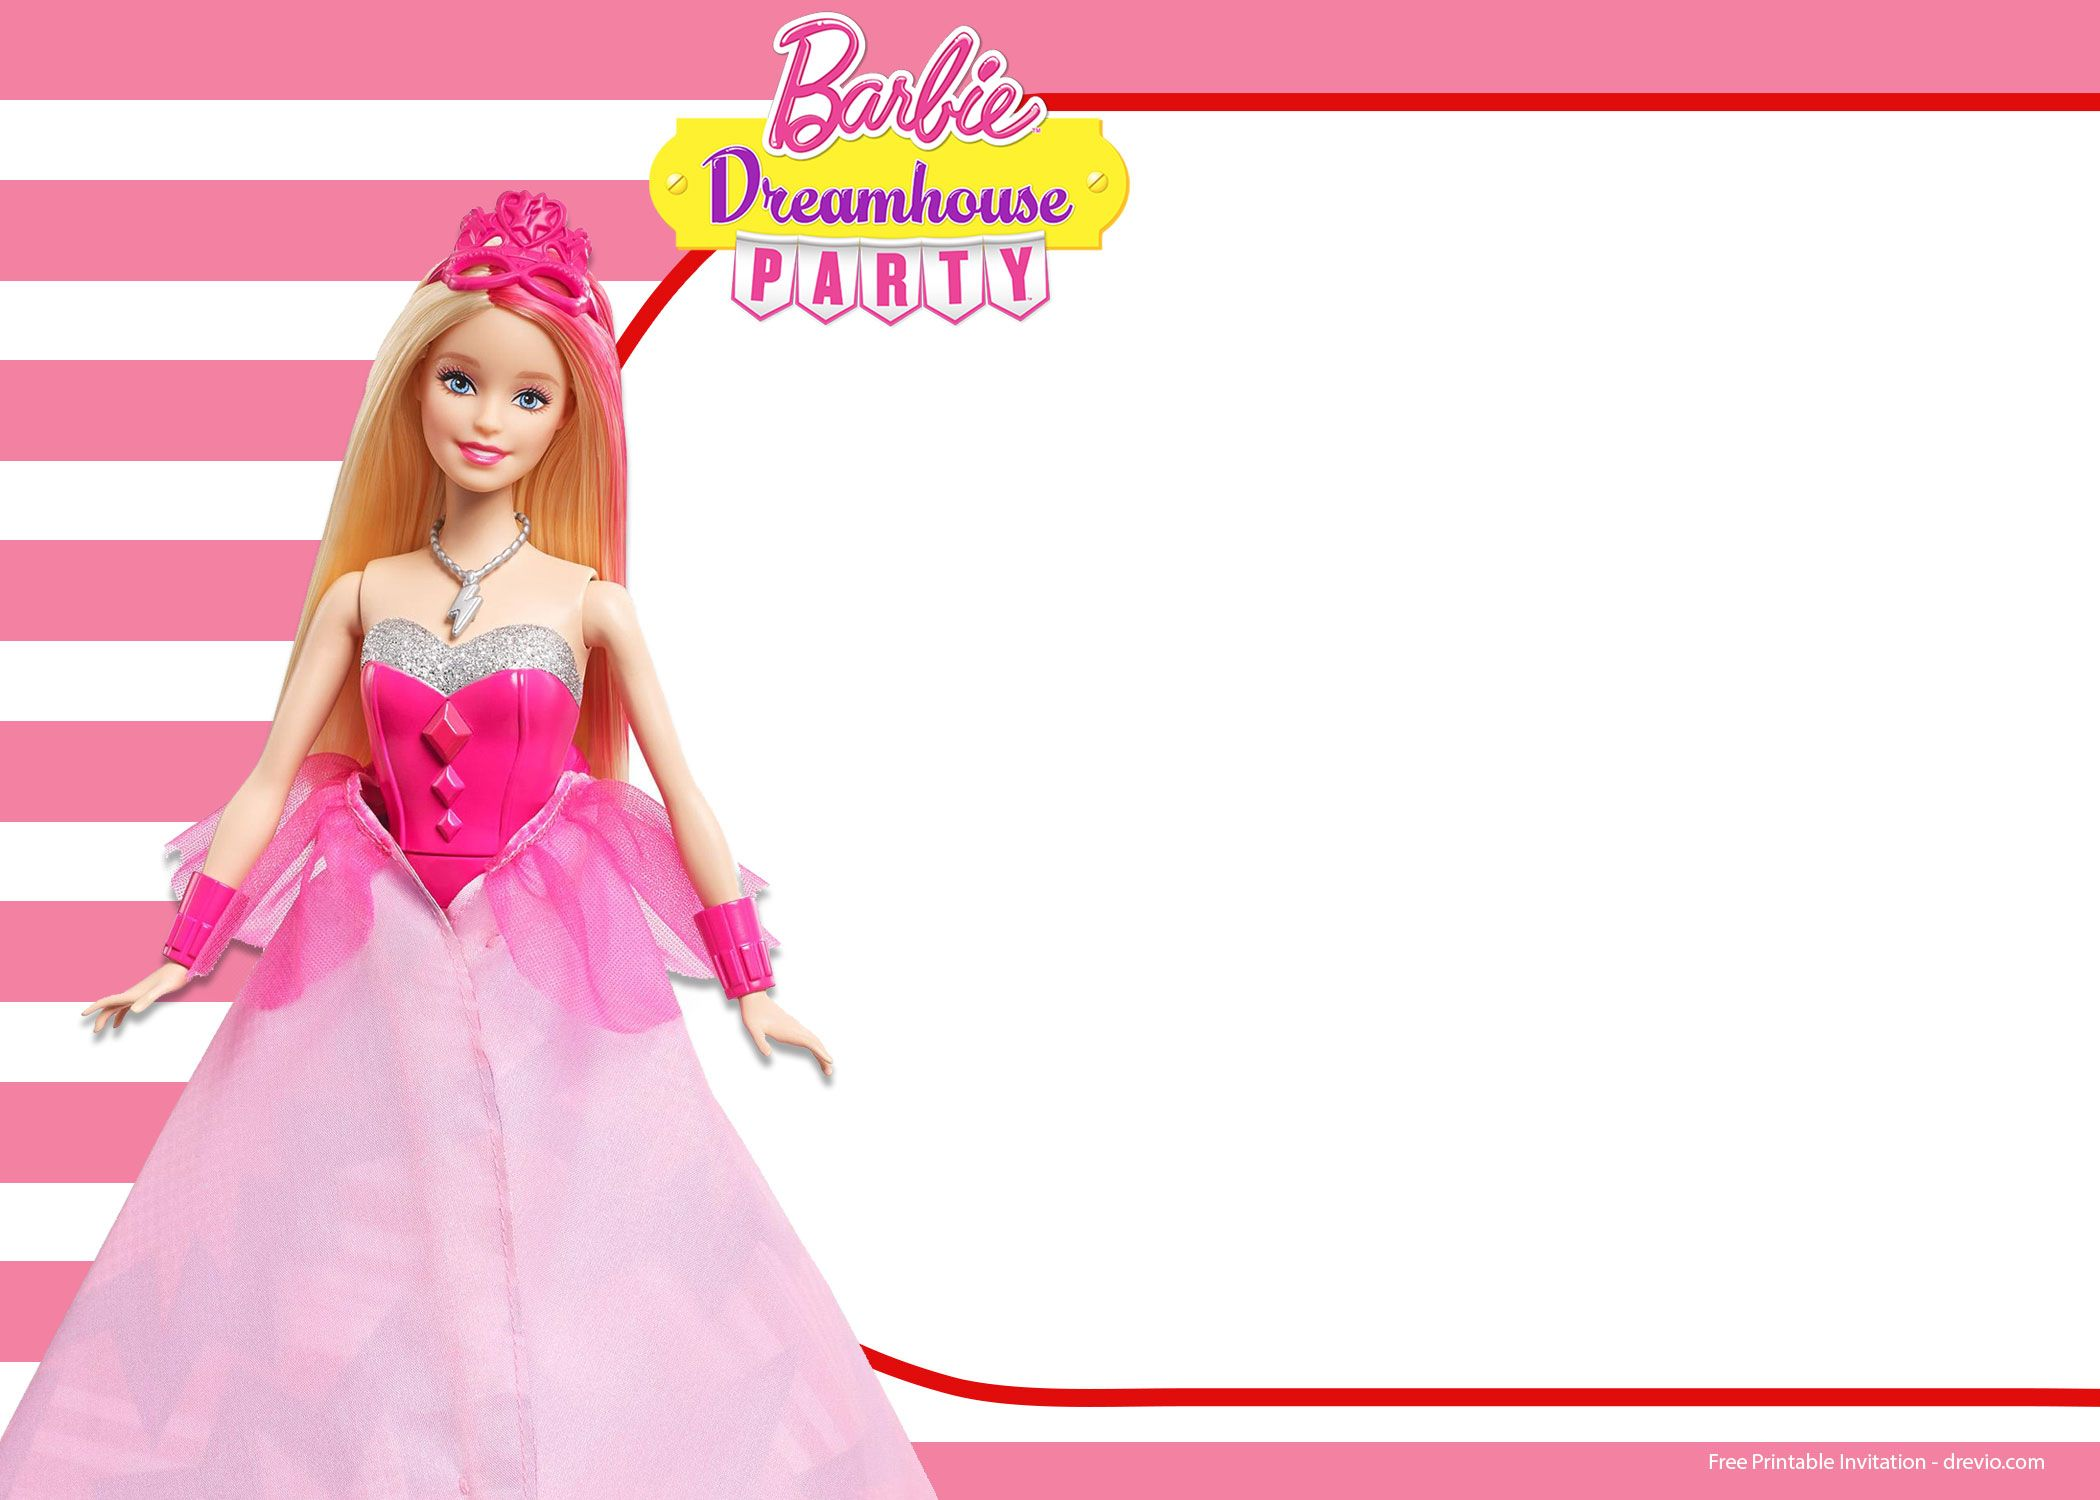 FREE Barbie Birthday Invitation Templates Barbie birthday